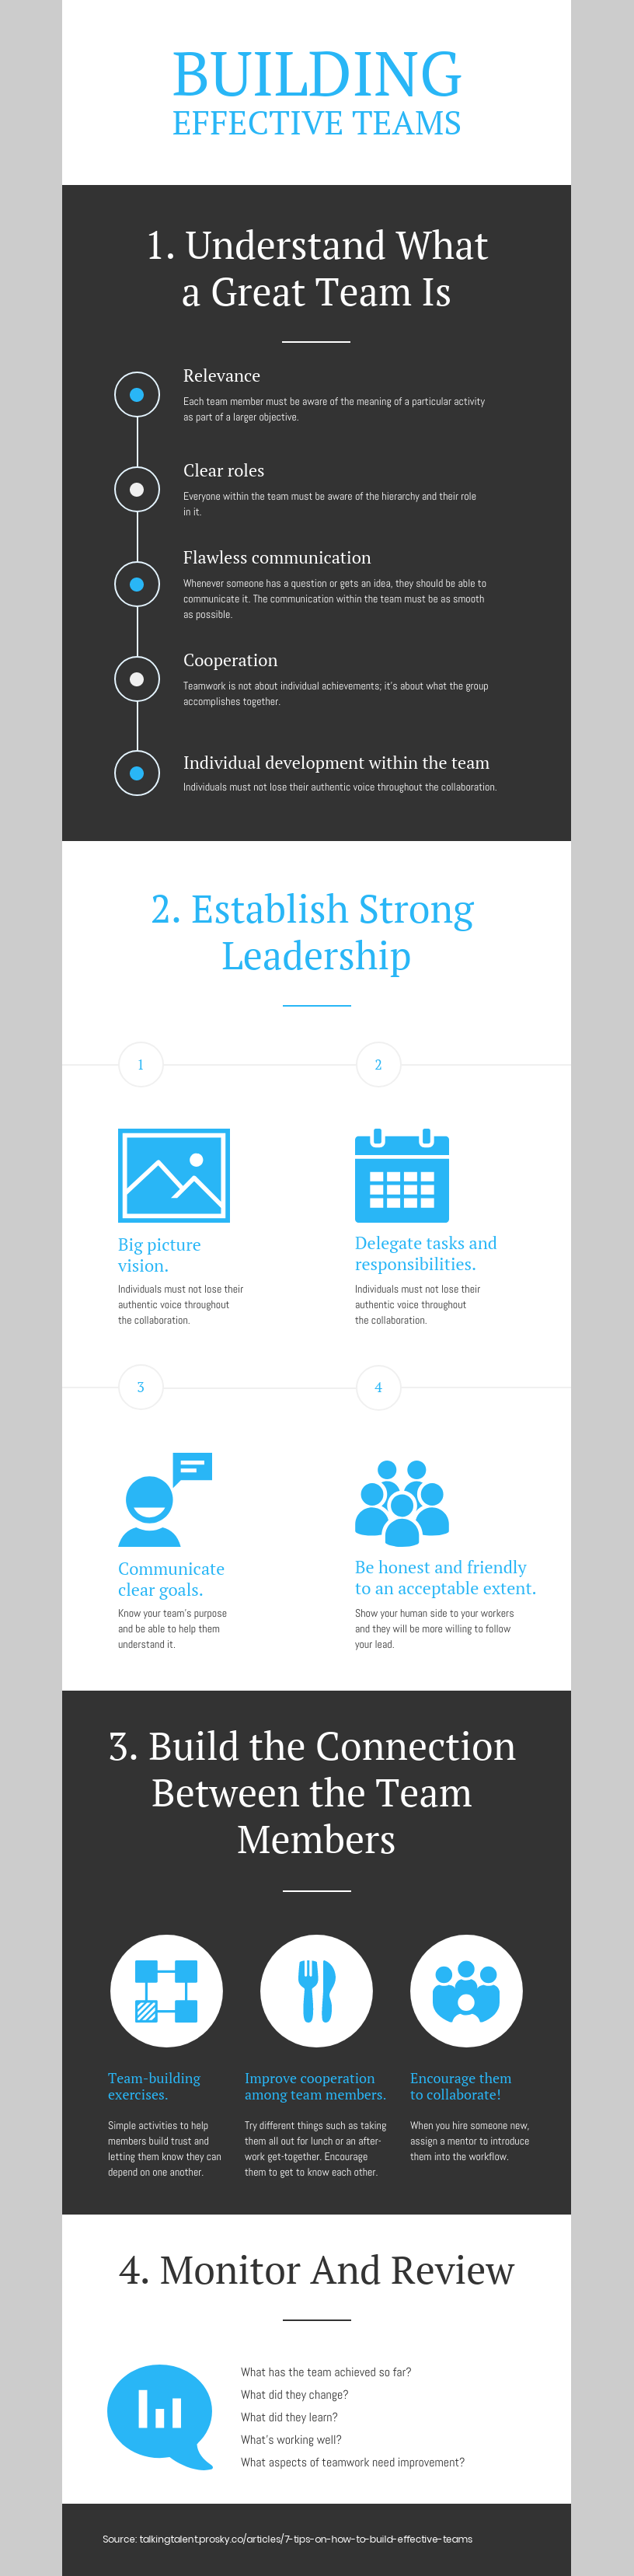 Change Management Strategy Building Effective Team Infographic Template